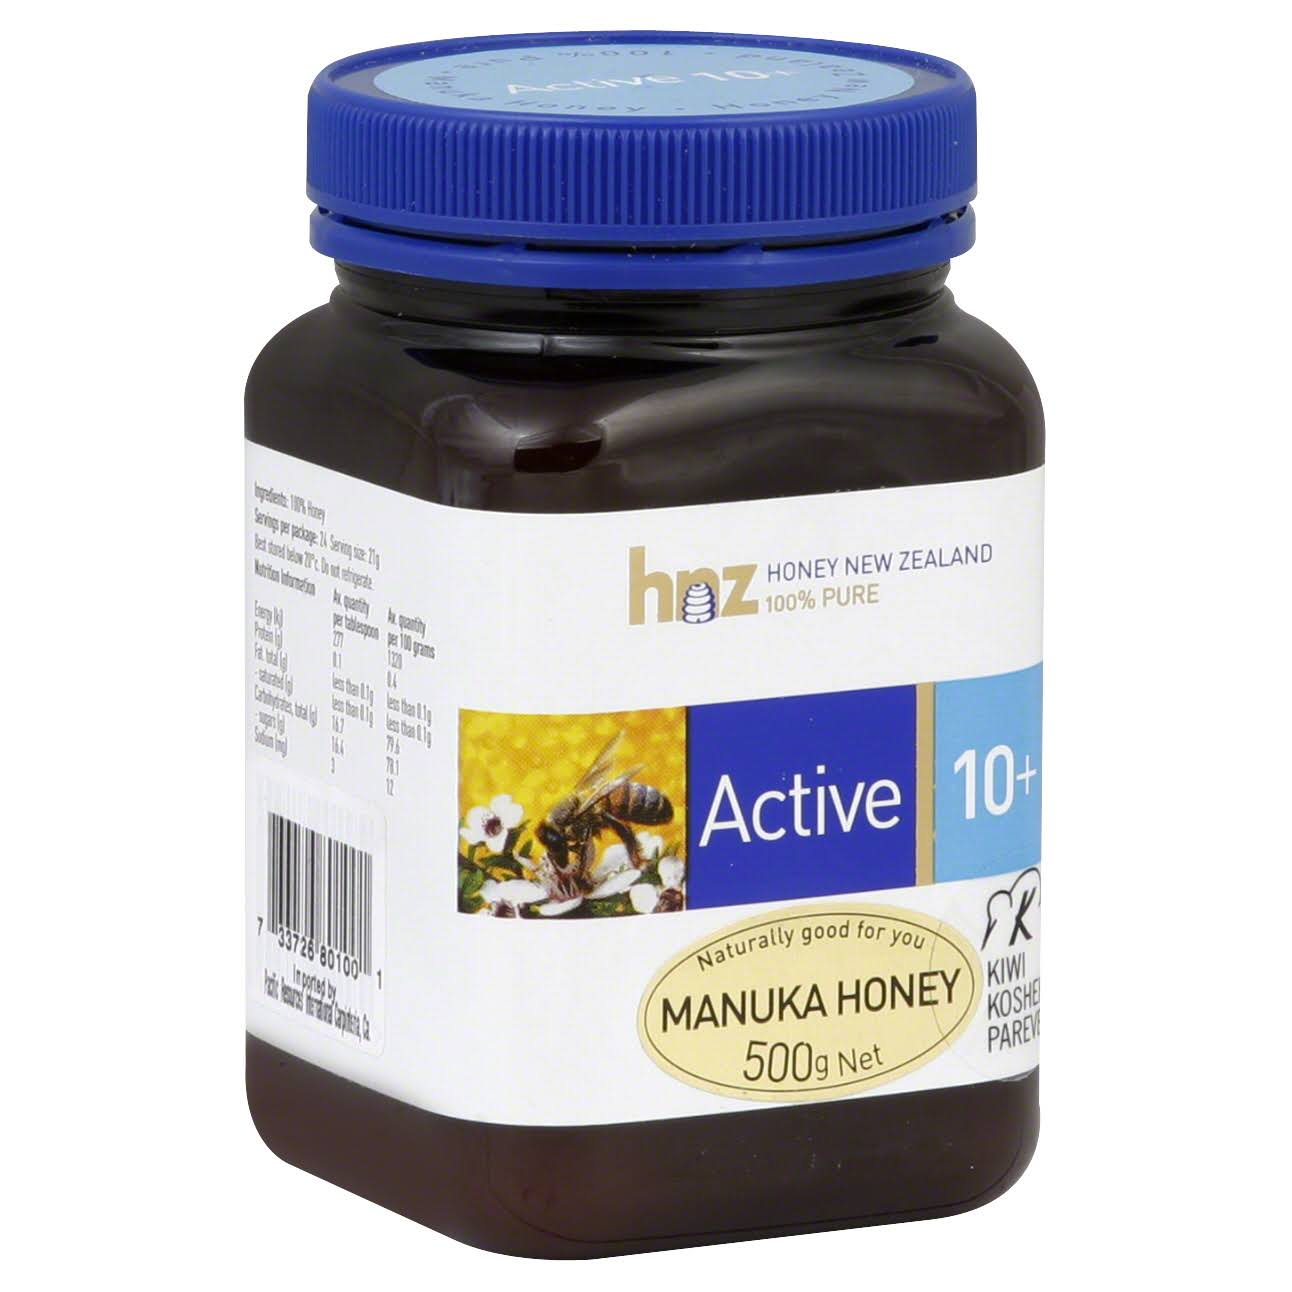 Manuka Honey Bio Active 10 Plus - 500g